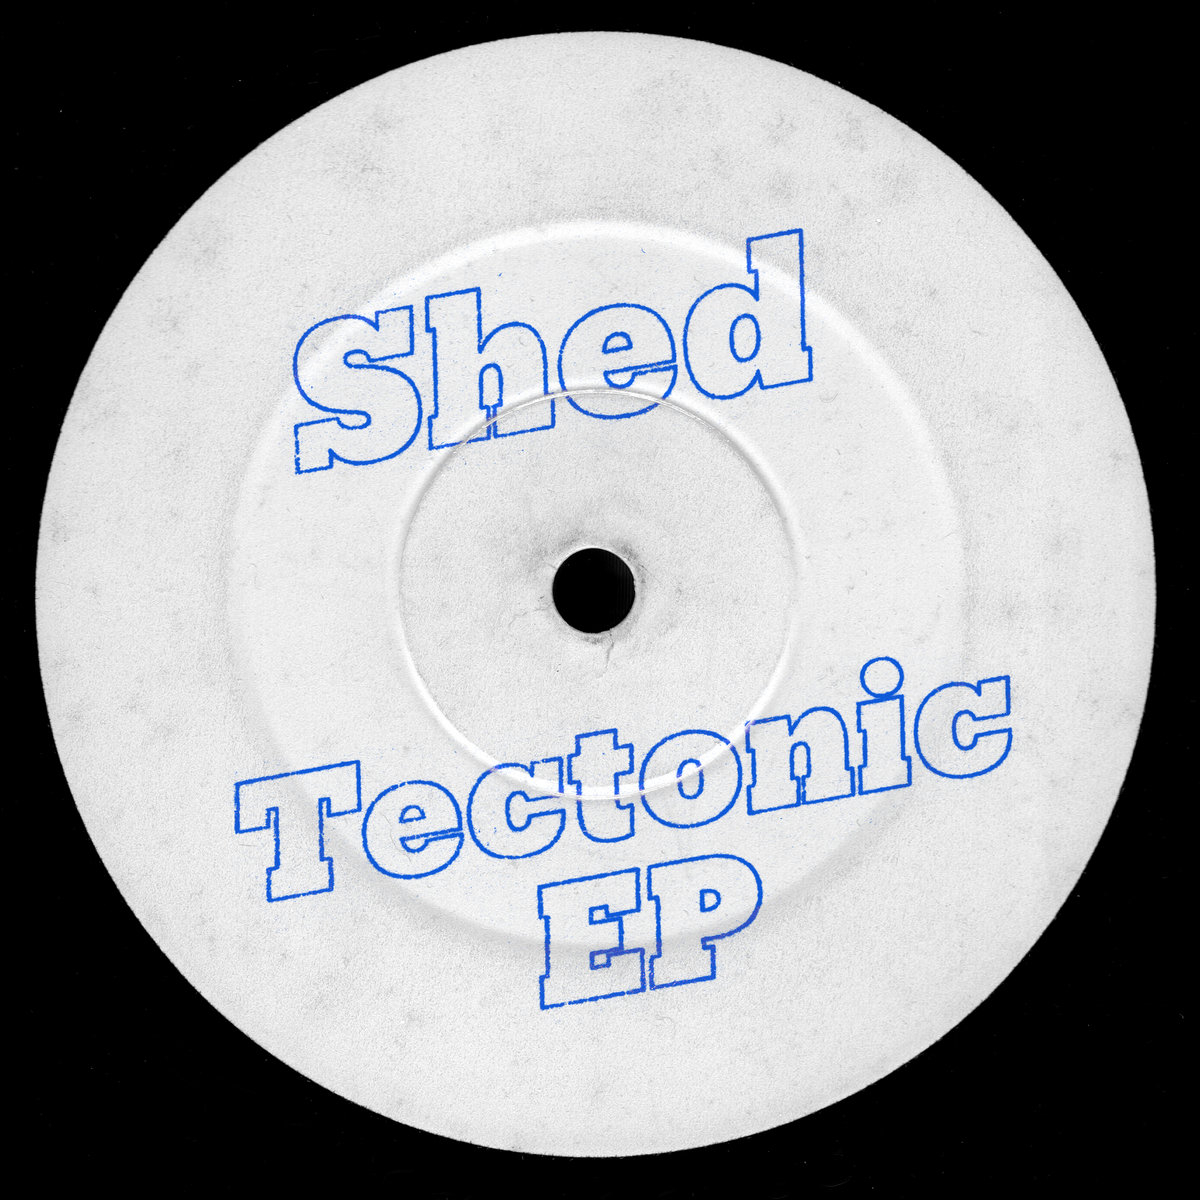 Shed - Tectonic